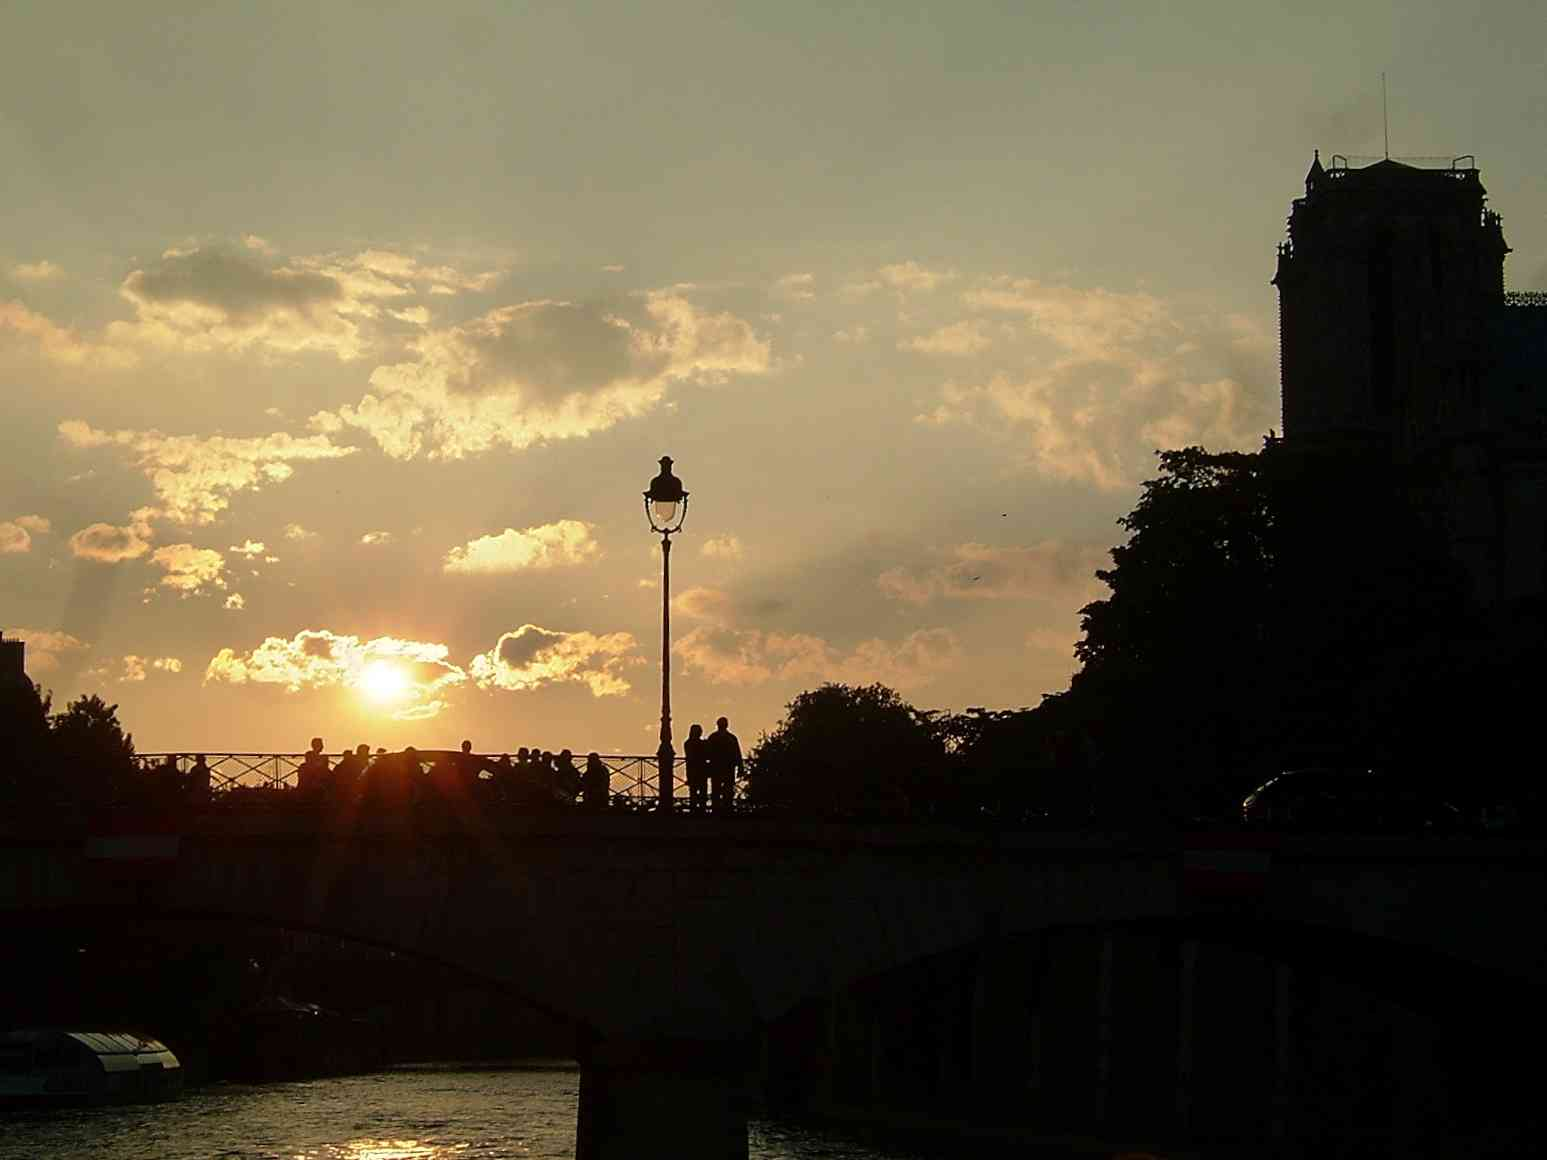 10_lovers_seine_paris.jpg